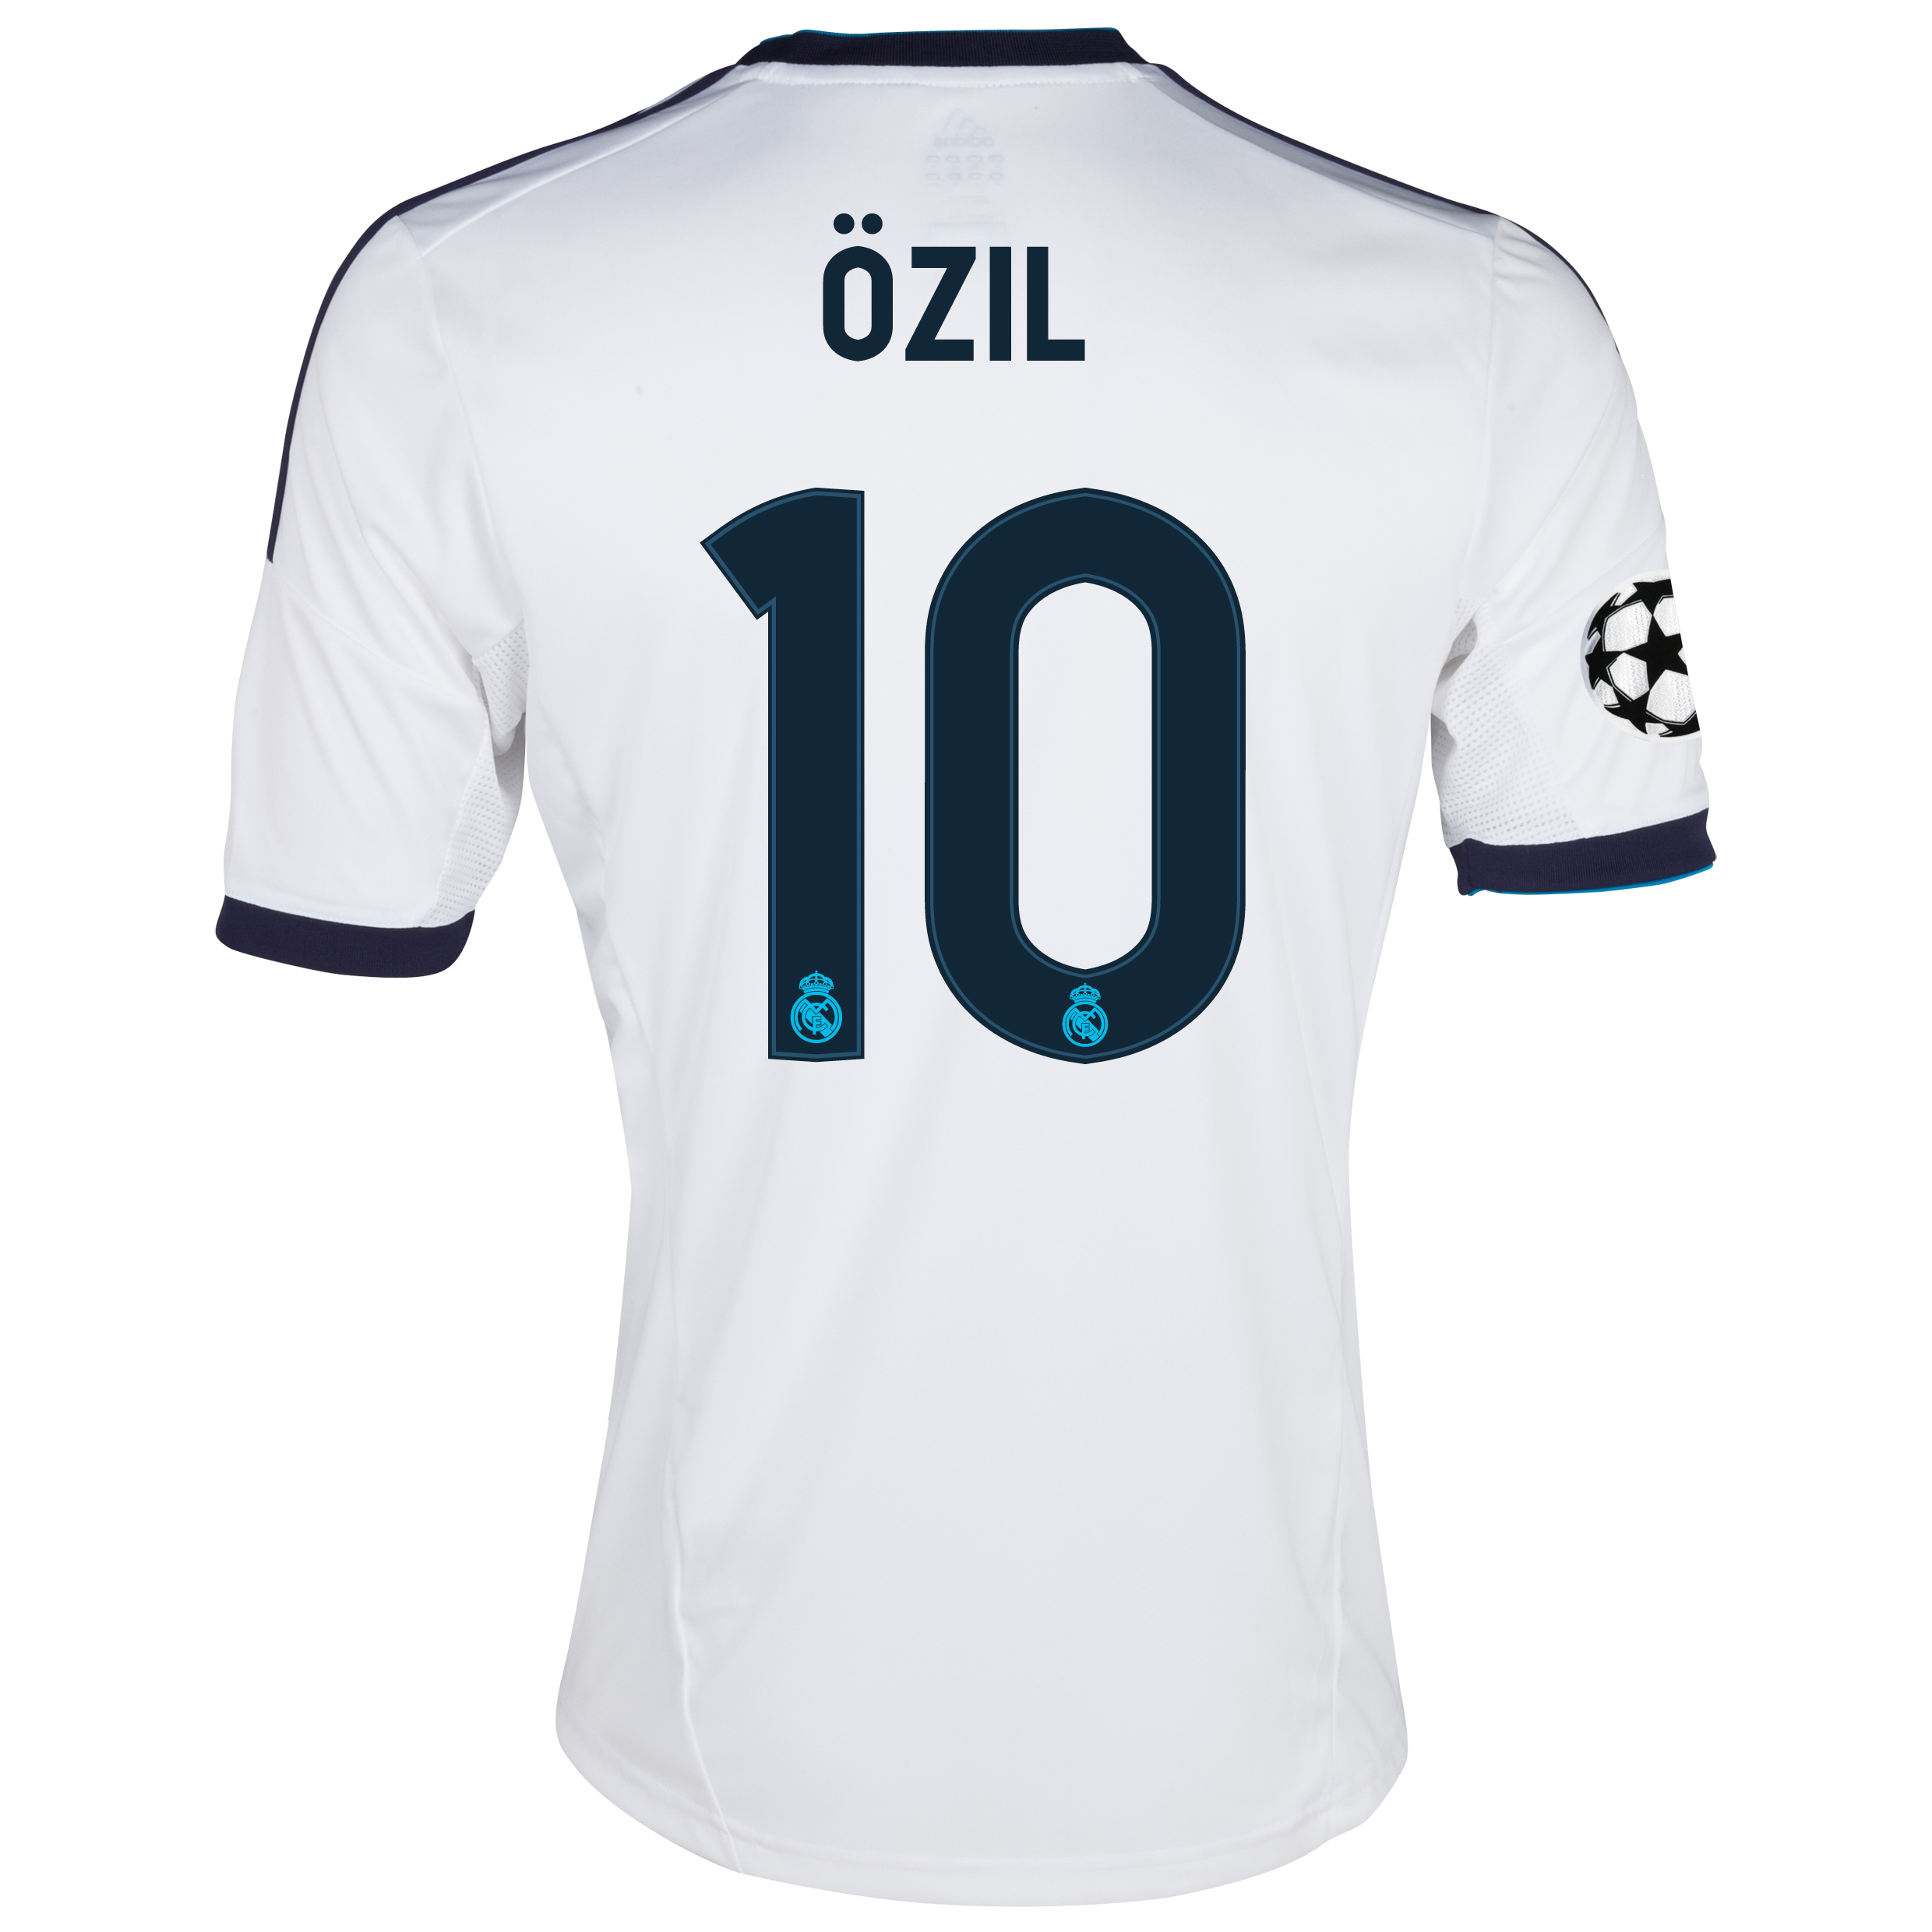 Camiseta local UEFA Champions League Real Madrid 2012/13 con impresión 10 Özil